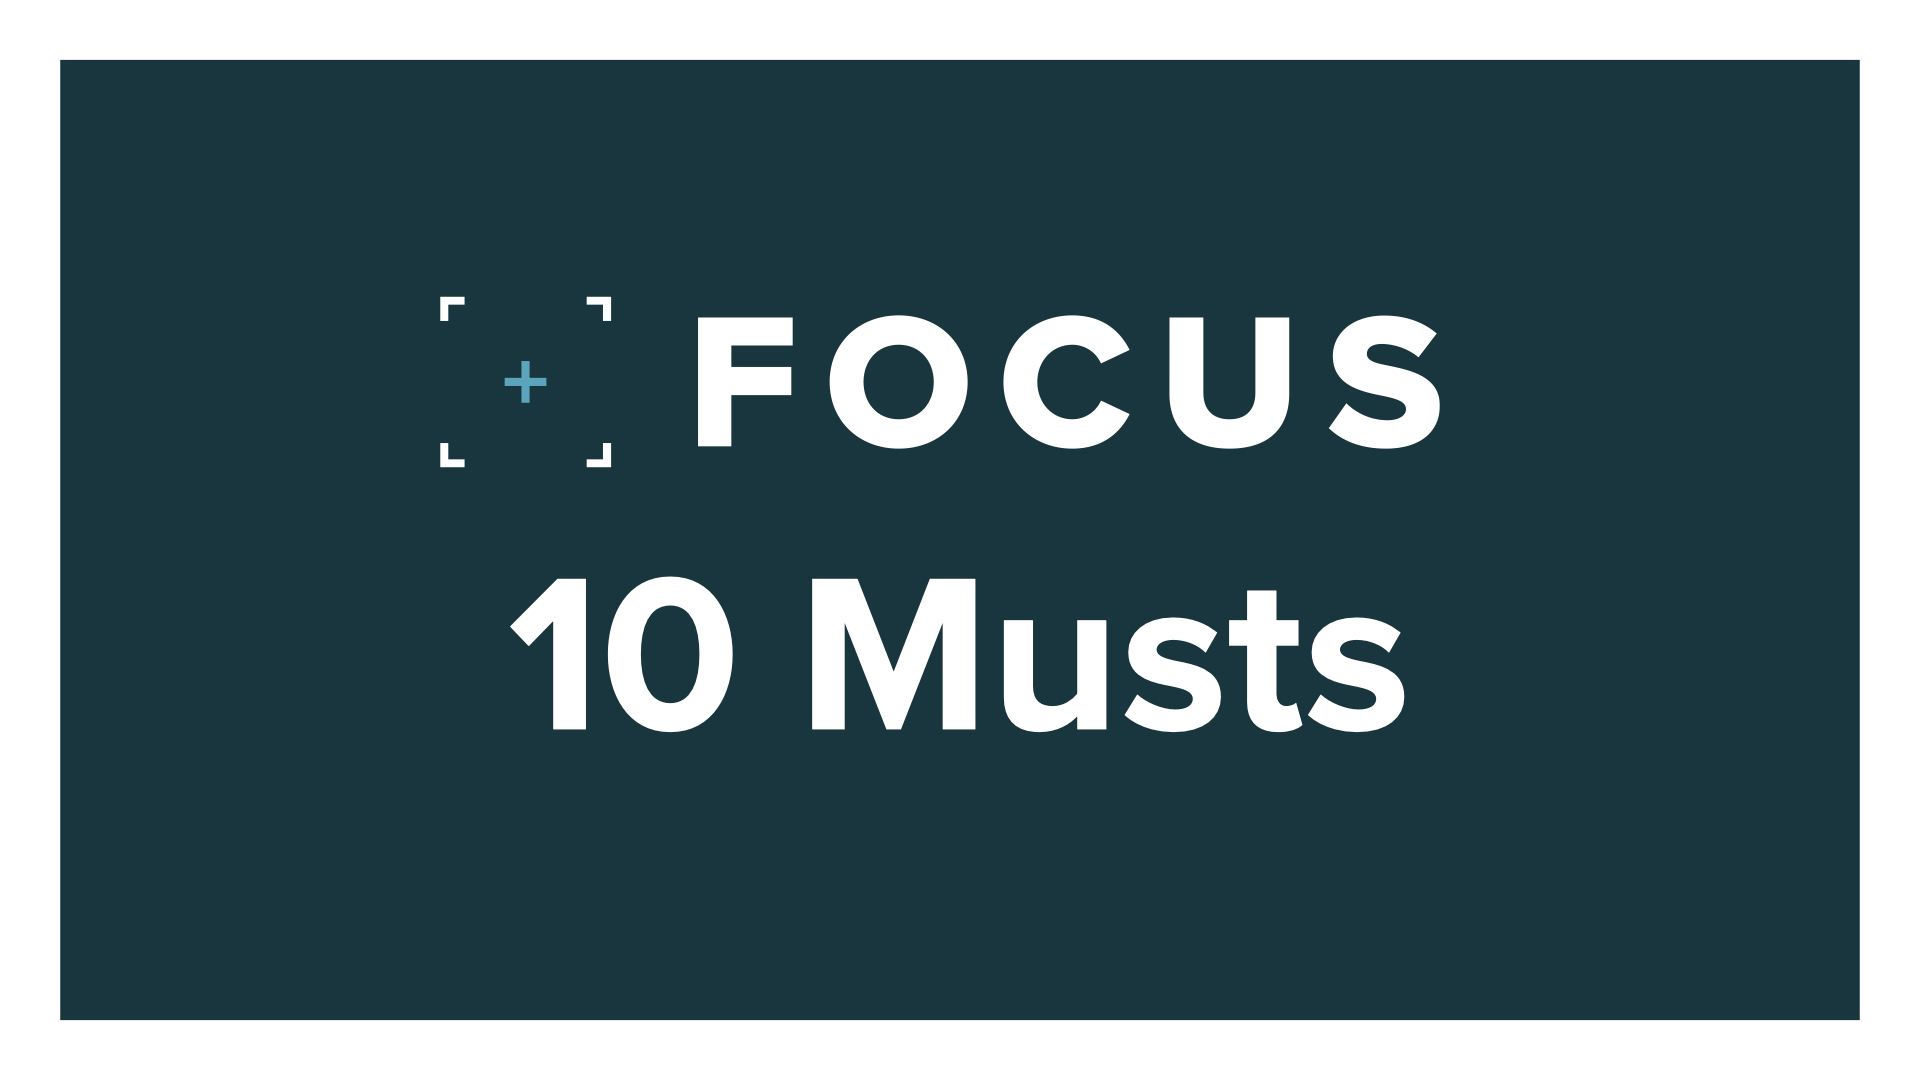 Focus 10 Musts Do's